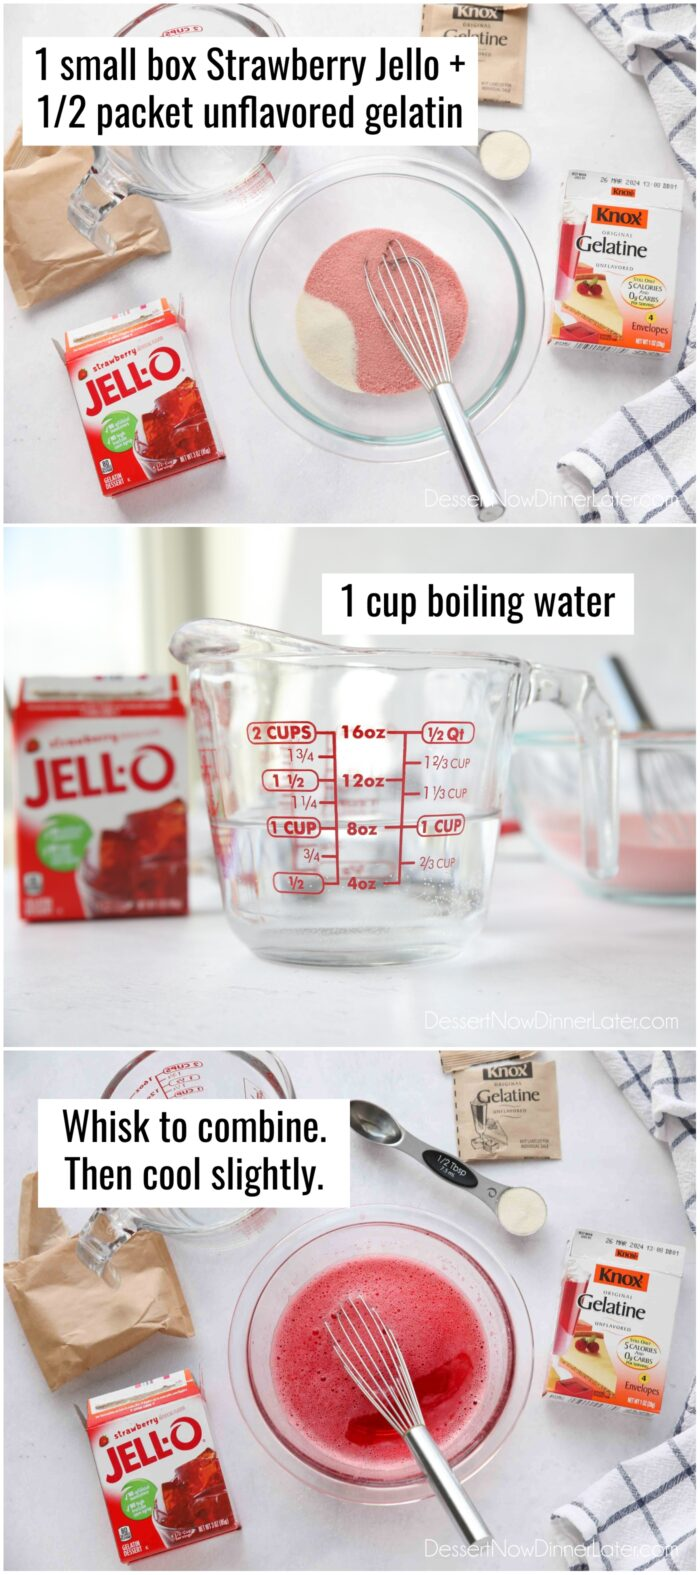 Red Layer: Mix one box strawberry jello with half a packet of unflavored gelatin, and 1 cup boiling water.